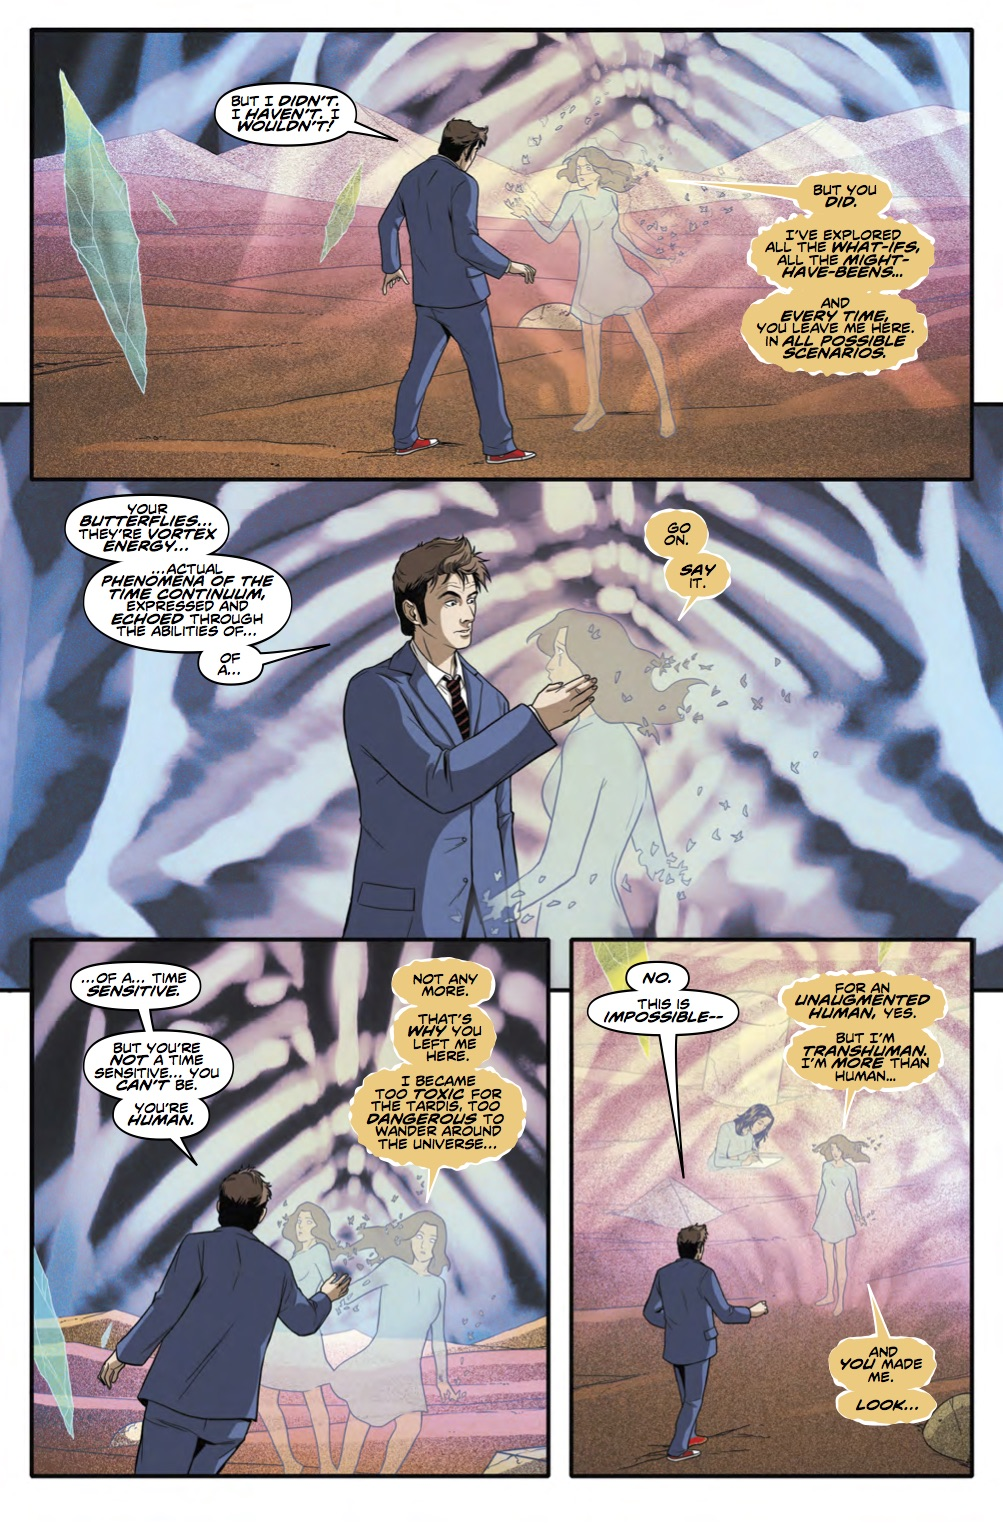 TENTH DOCTOR 3 10 - Page 4 (Credit: Titan )